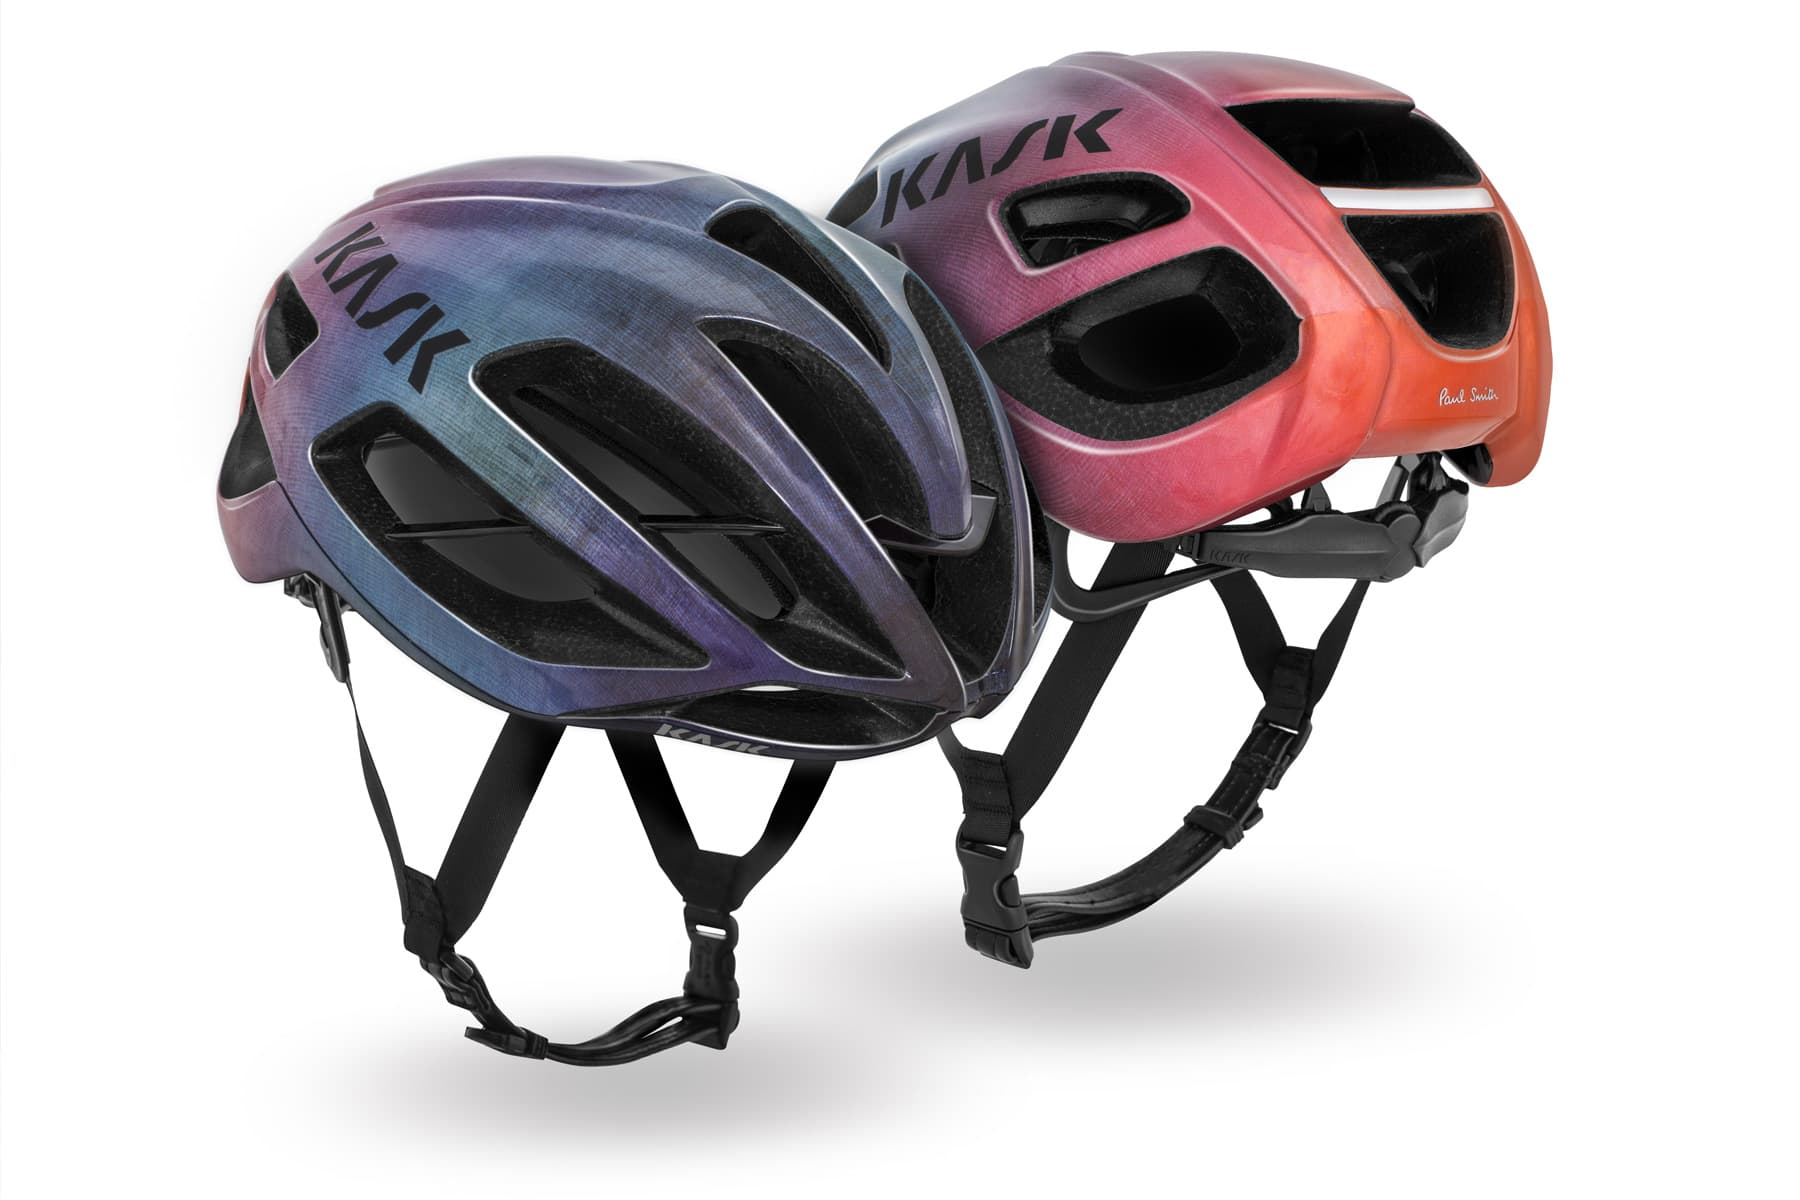 Paul Smith + Kask show us the Rainbow